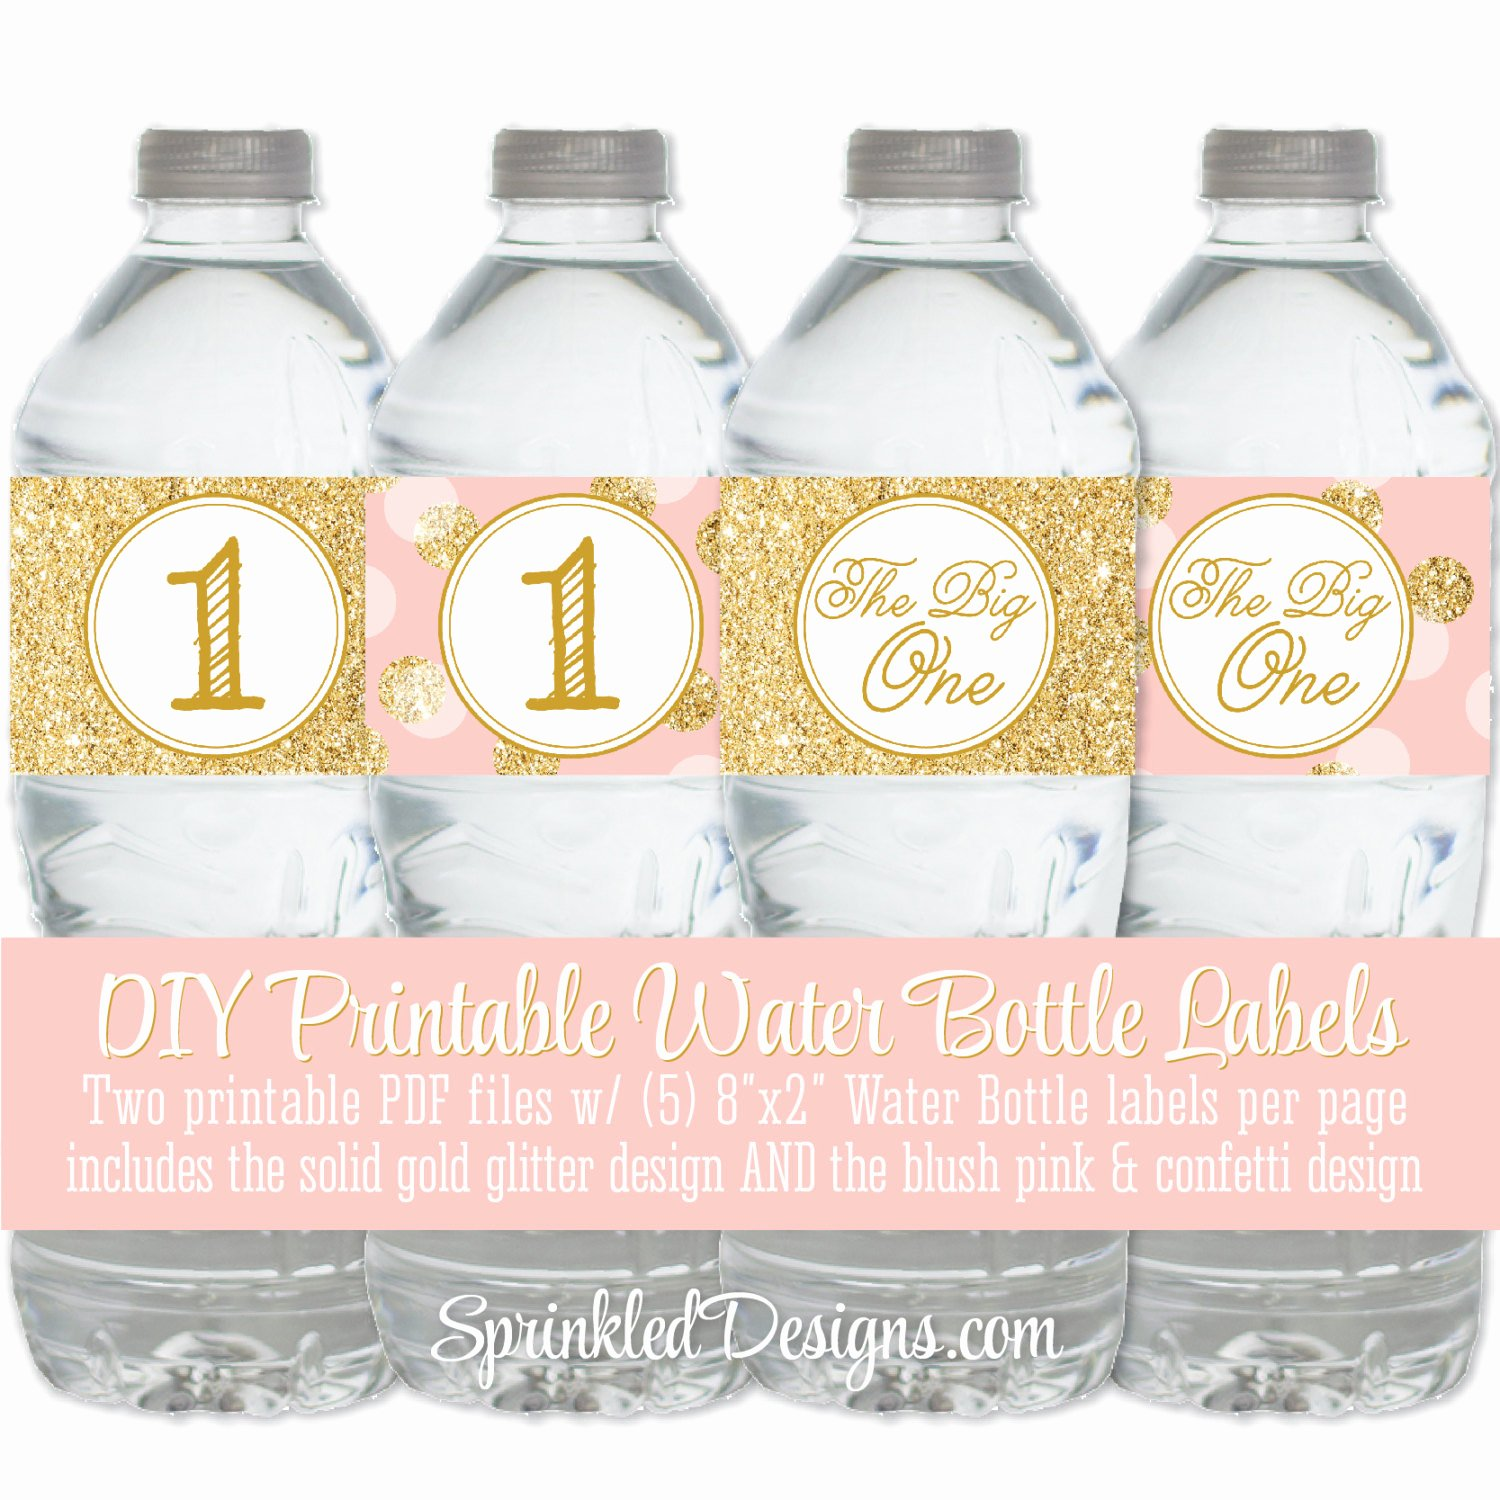 Printable Water Bottle Labels Inspirational Printable Water Bottle Labels Drink Wraps Wrappers Blush